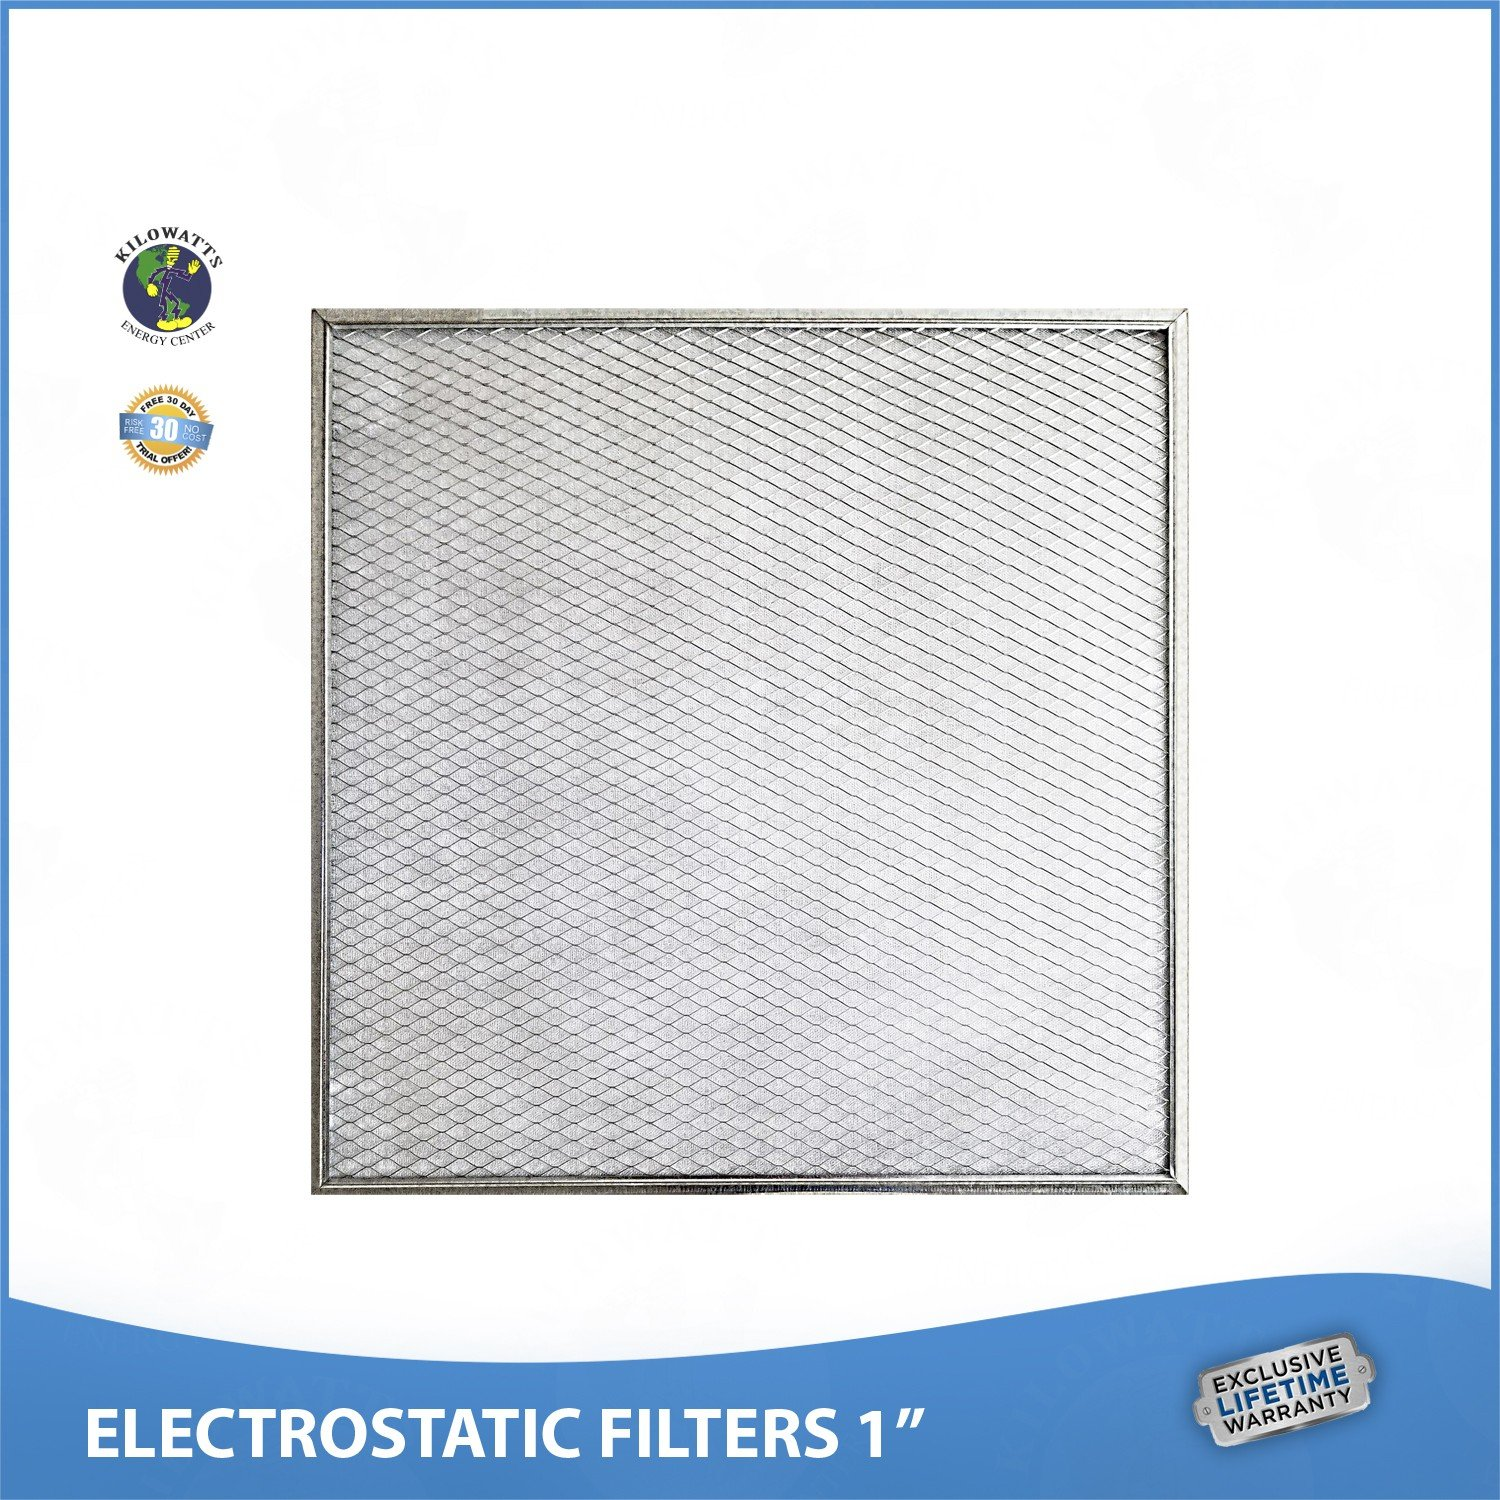 23- 1/8 x 19- 3/8 x 1 Lifetime Air Filter - Electrostatic Washable Permanent A/C Silver Steel Frame 65% more efficiency by Kilowatts Energy Center